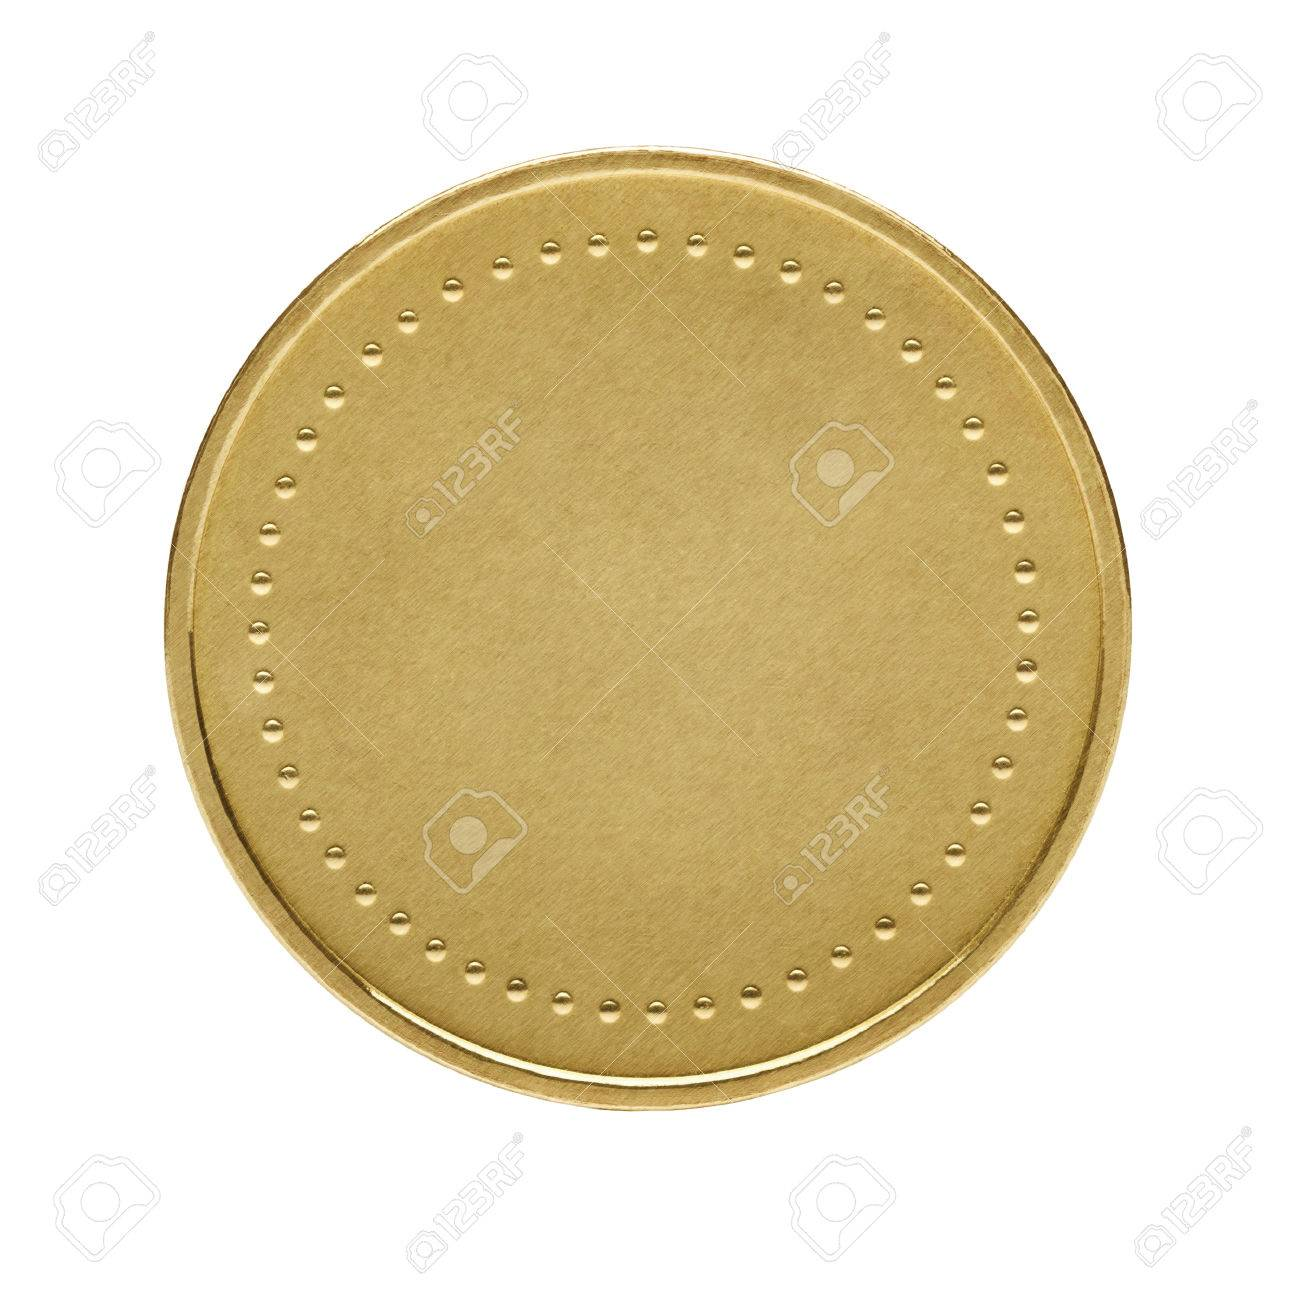 Close up of golden coin isolated on white - 27483634